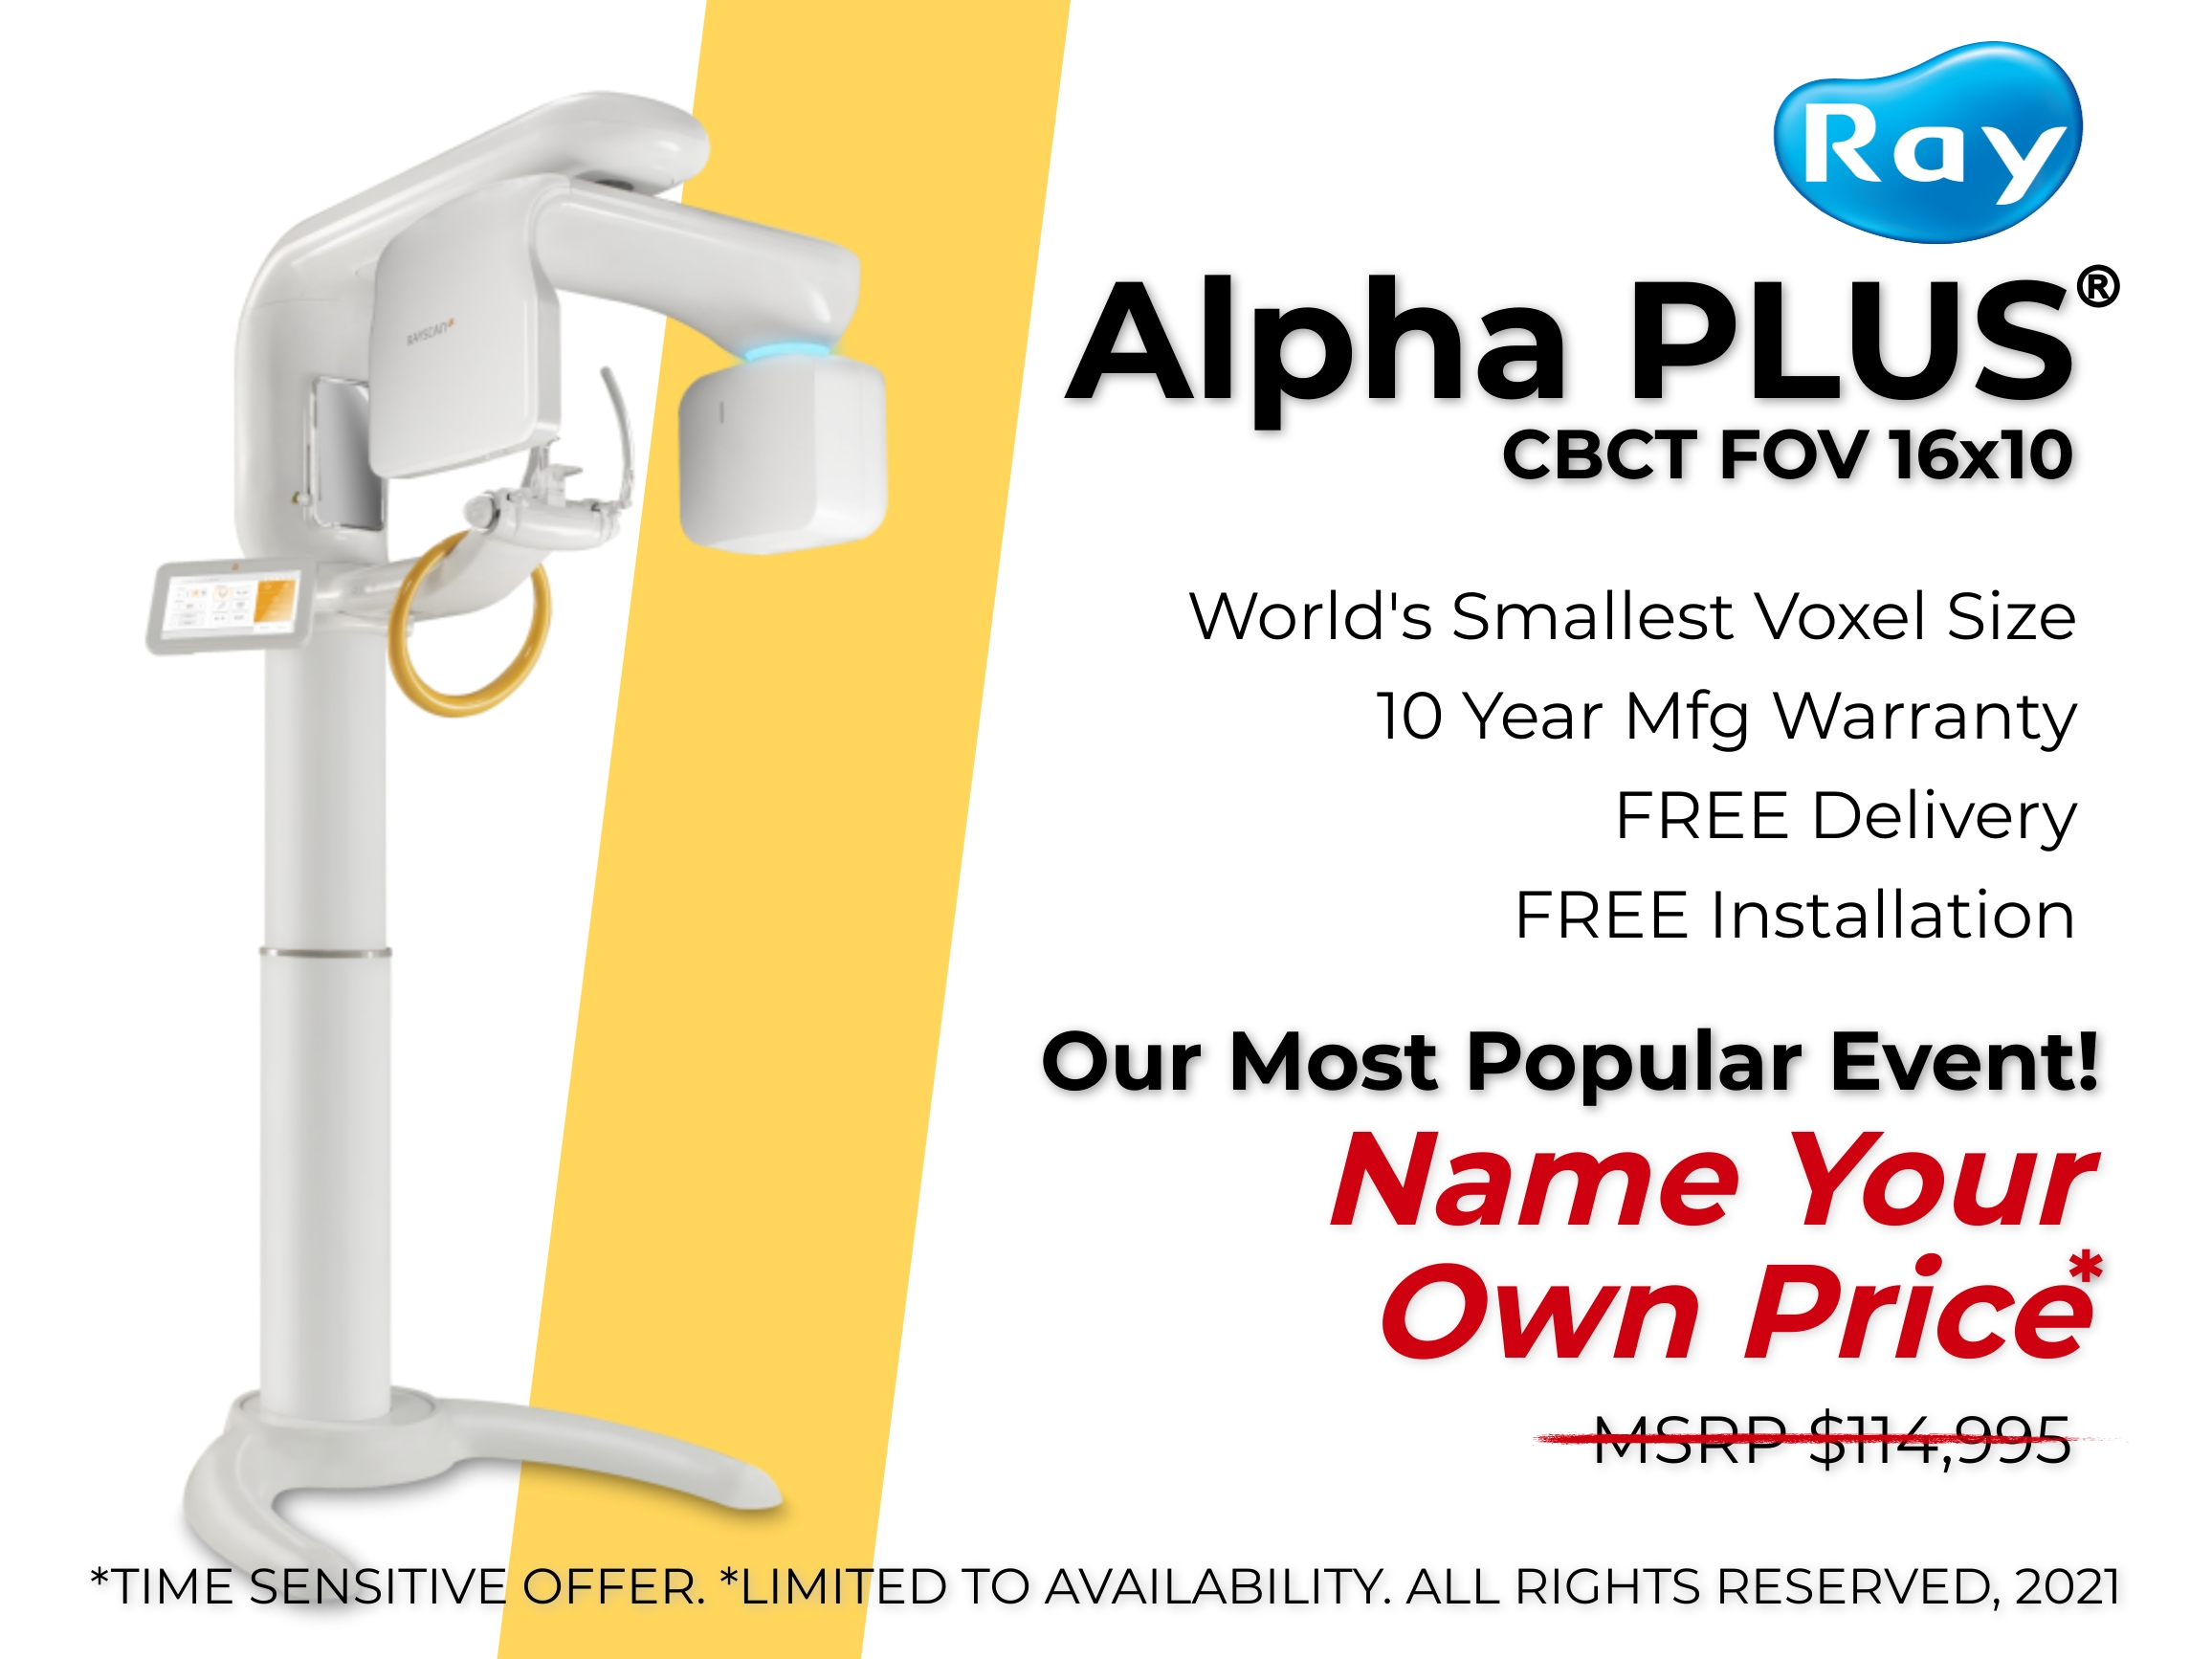 ray, rayscan, rayamerica, cbct, alpha, alpha plus, plus, fov, voxel, fastest, smallest, cheapest, powerful, x-ray, diagnostic, dental, surgical, implant, airway, tmj, endo, µm, near me, free delivery, free installation, dicom, stl, conversion, software, ondemand3d, smartdent, integration, integdental, free, bonus, limited, near me, bargain, deal